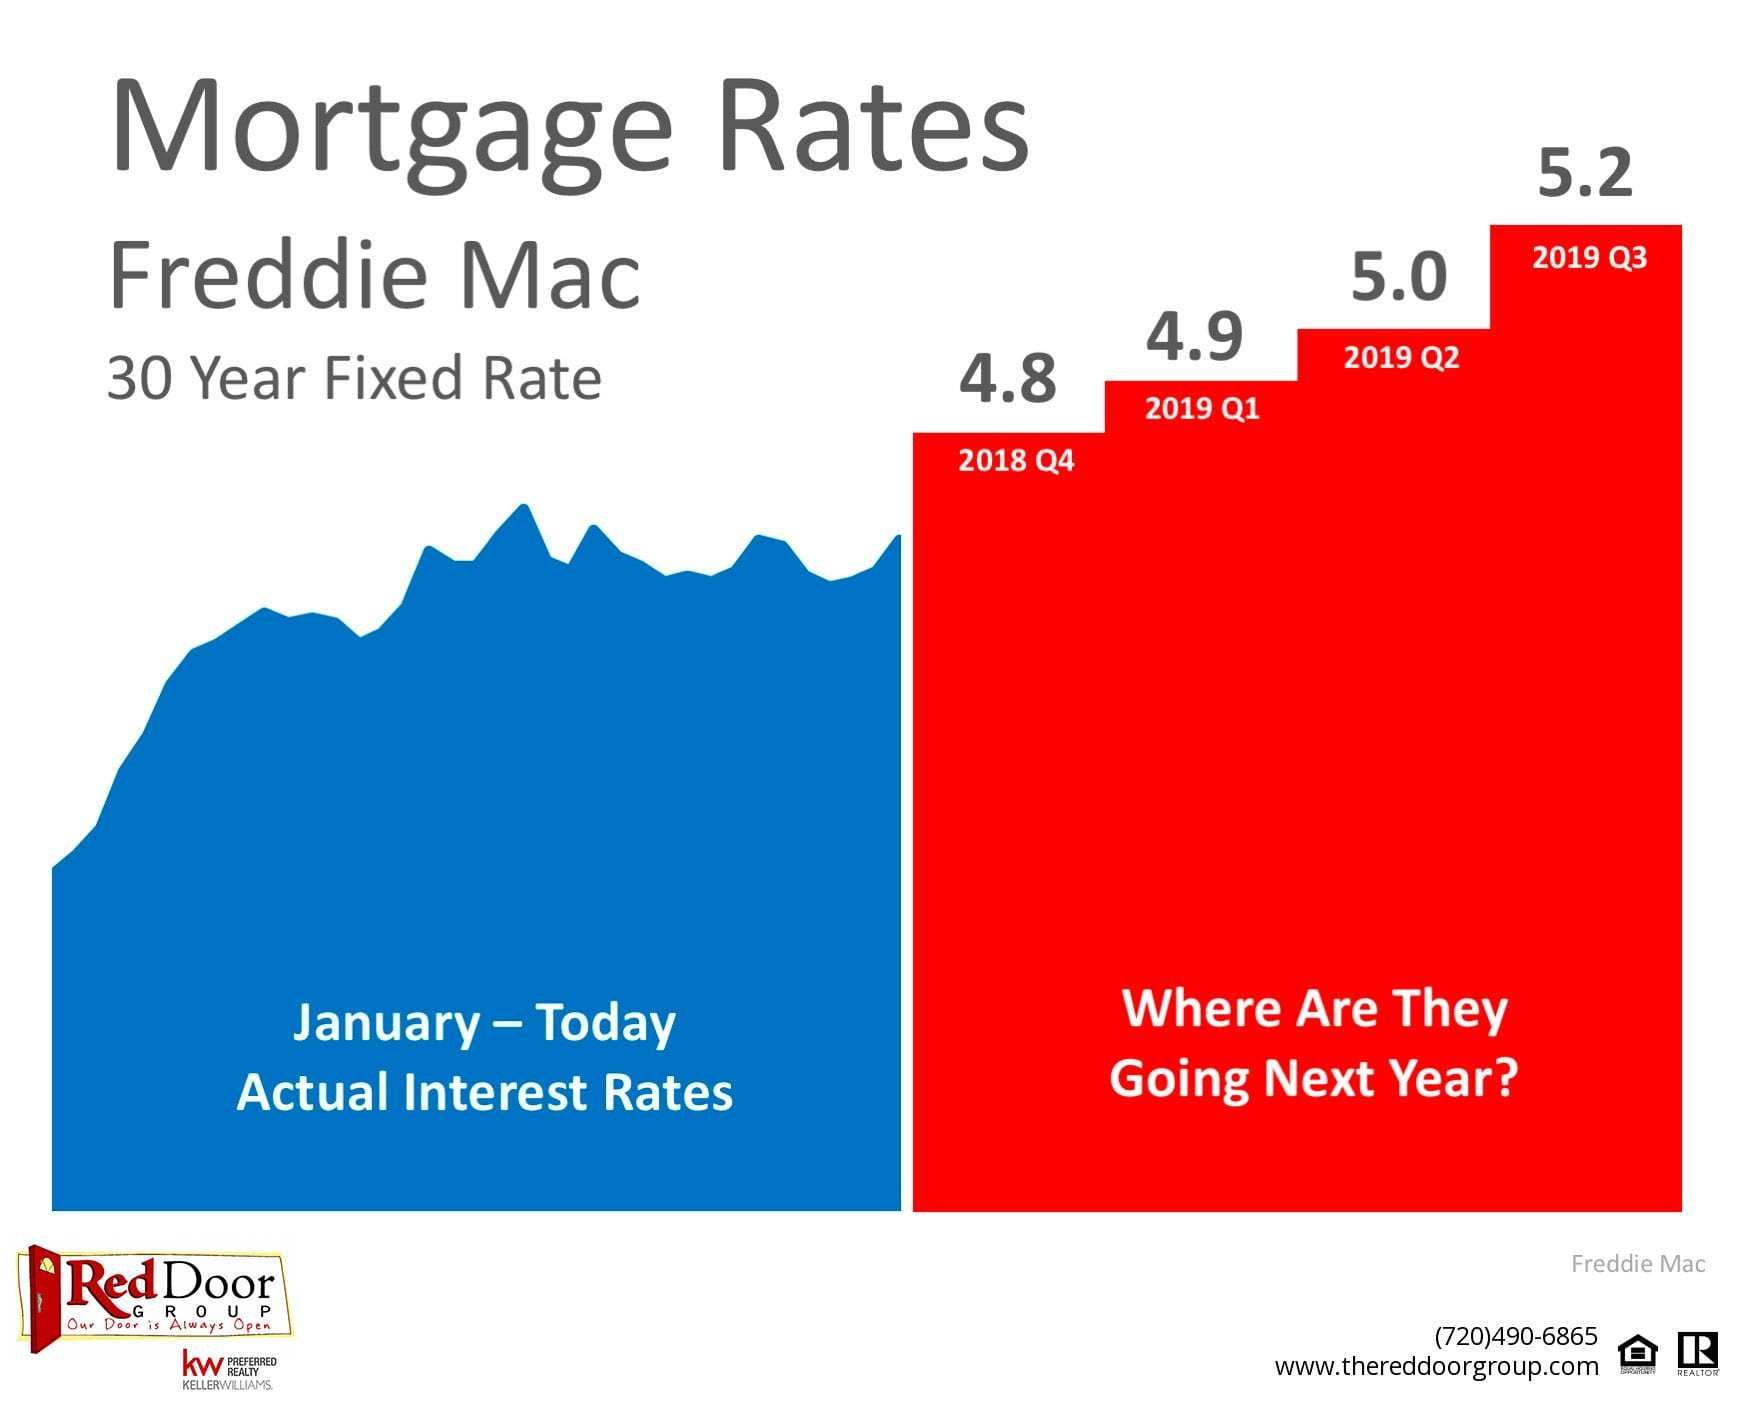 Where Are Mortgage Interest Rates Headed In 2019 The Red Door Group Scoop The Red Door Group Scoop Mortgage Interest Rates Mortgage Interest Interest Rates